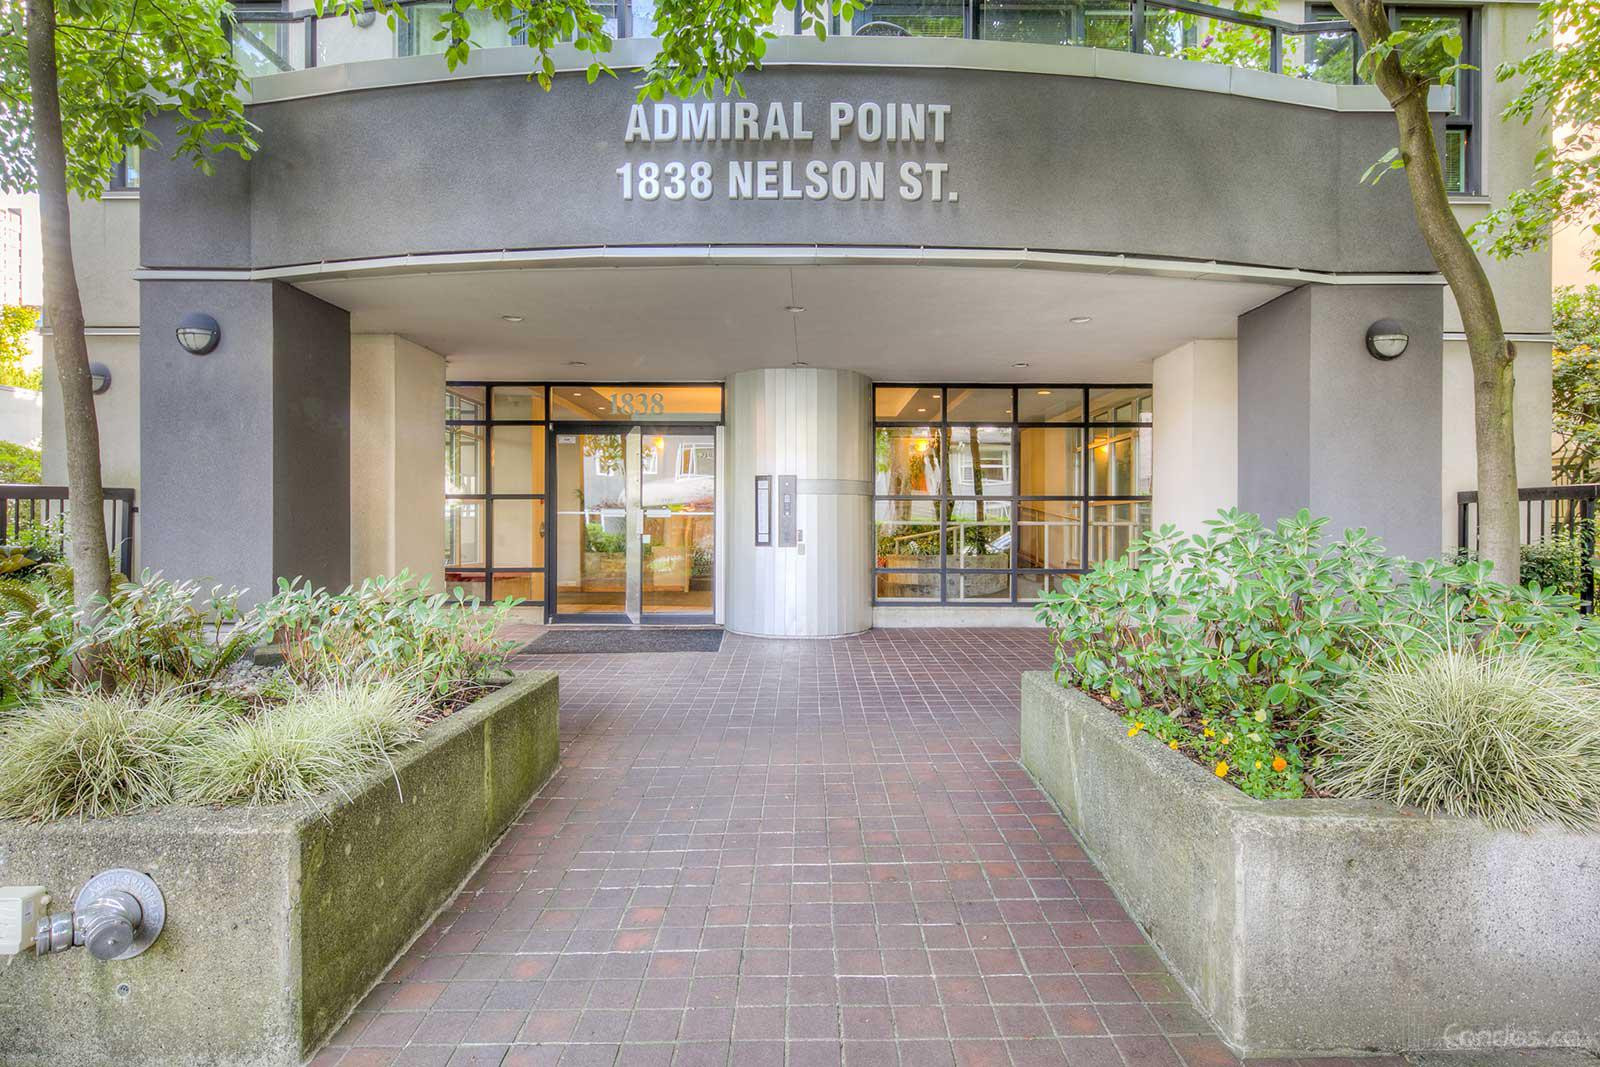 Admiral Point at 1838 Nelson St, Vancouver 1